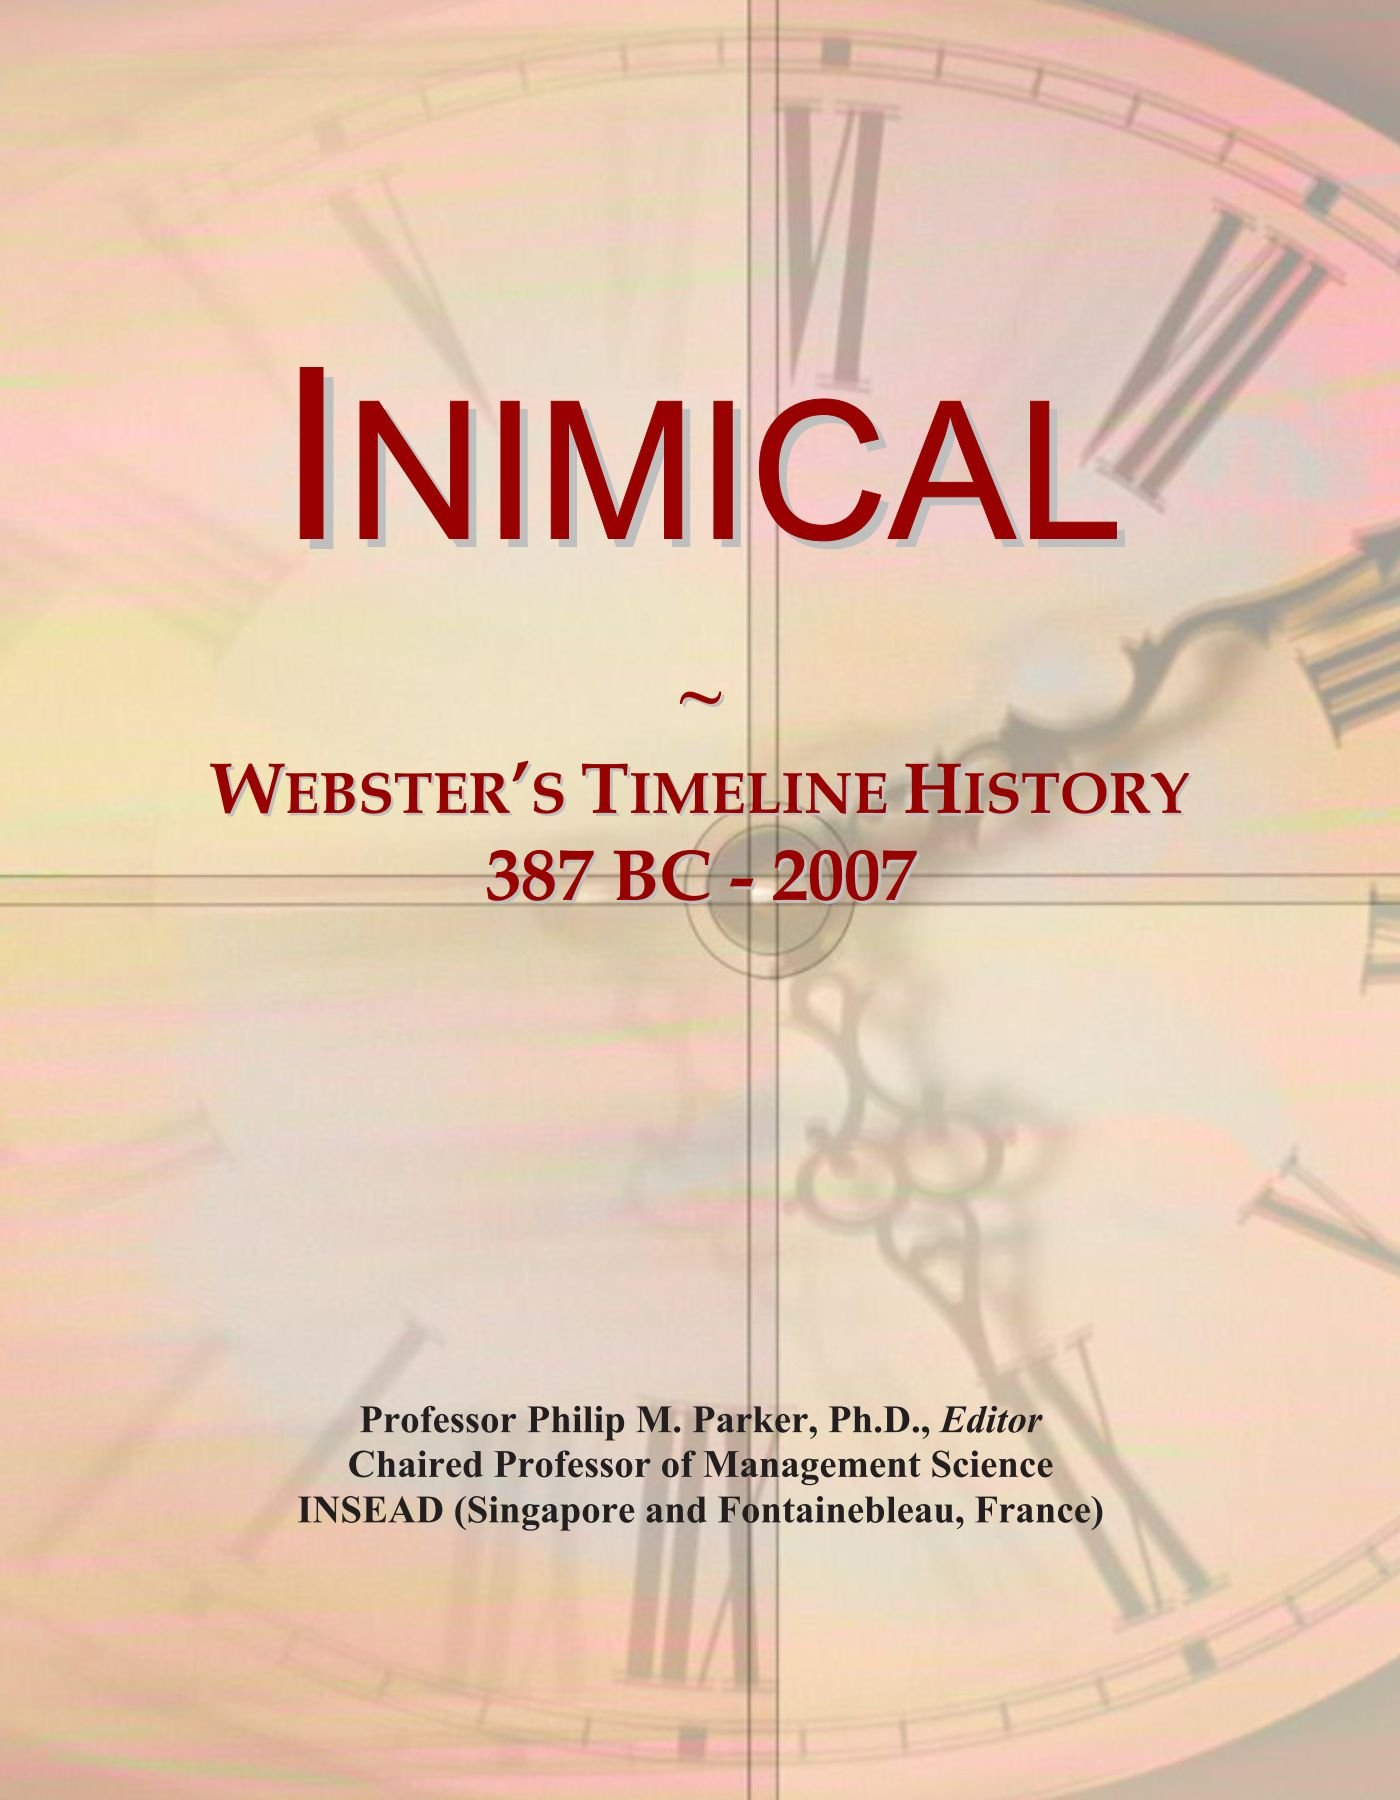 Inimical: Webster's Timeline History, 387 BC - 2007 ebook